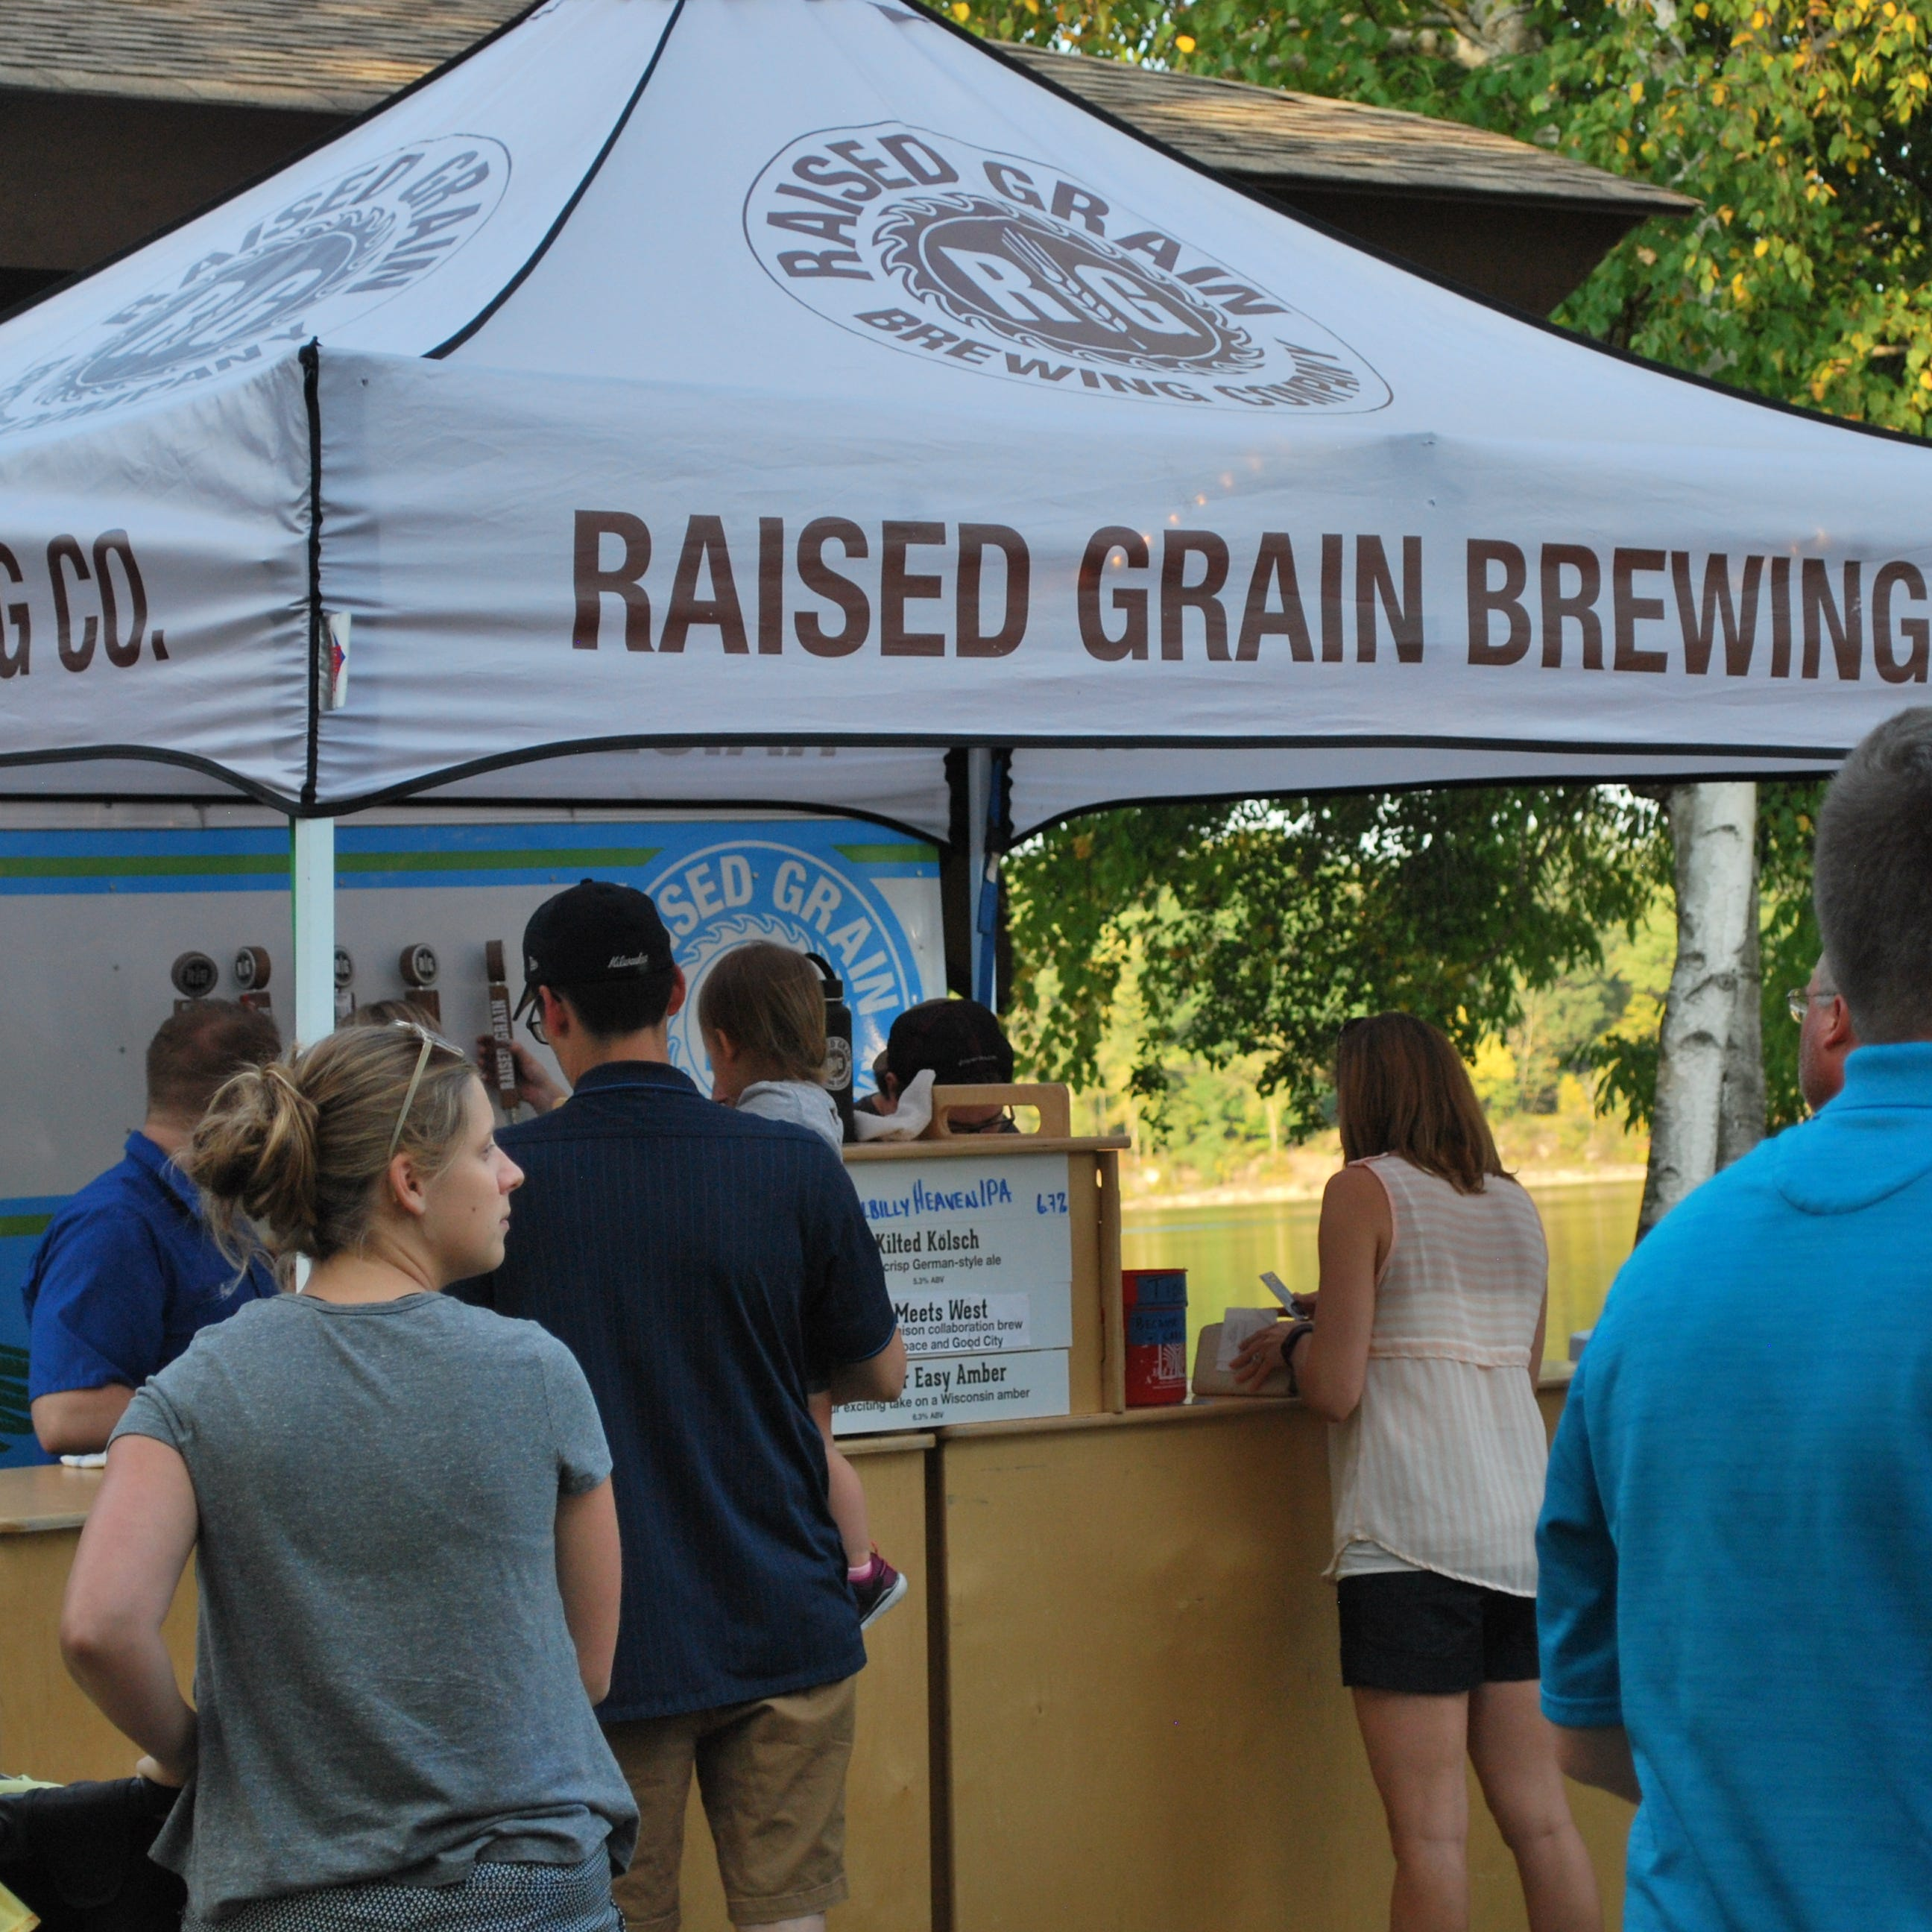 More traveling beer gardens: Black Husky in Washington County and Raised Grain in Waukesha County